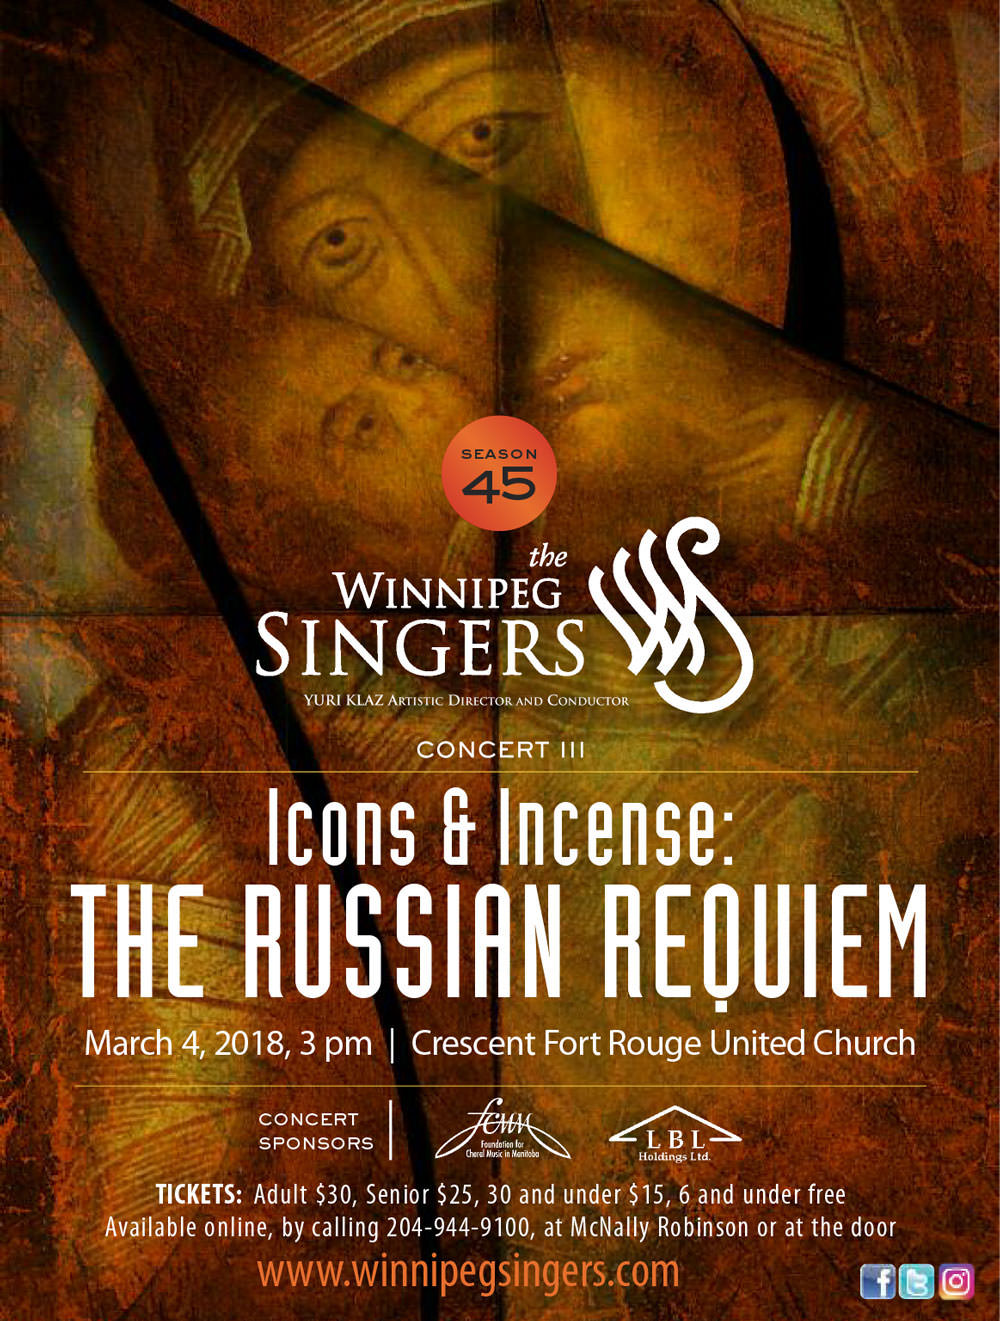 Winnipeg Singers THE RUSSIAN REQUIEM Concert Poster